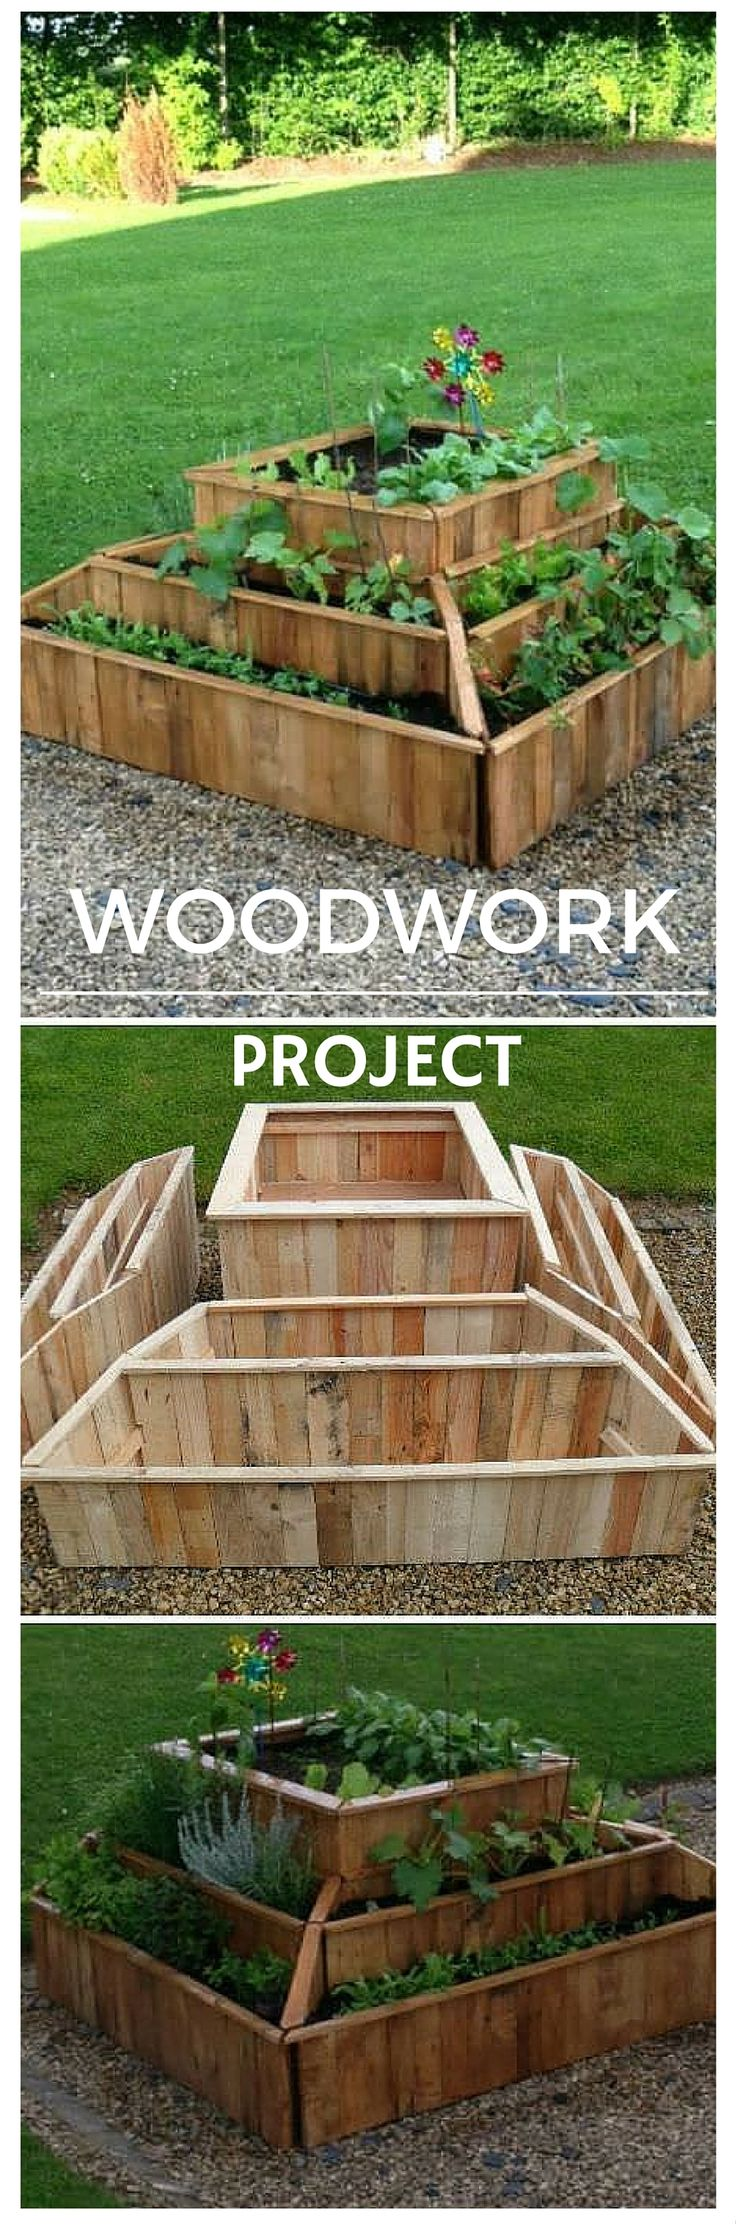 Woodwork Plans,Projects and Ideas Whether You are a Experienced Woodworker or Just Starting Out, You Will Find  Something That Is Right For You Have a Look! http://vid.staged.com/aFks